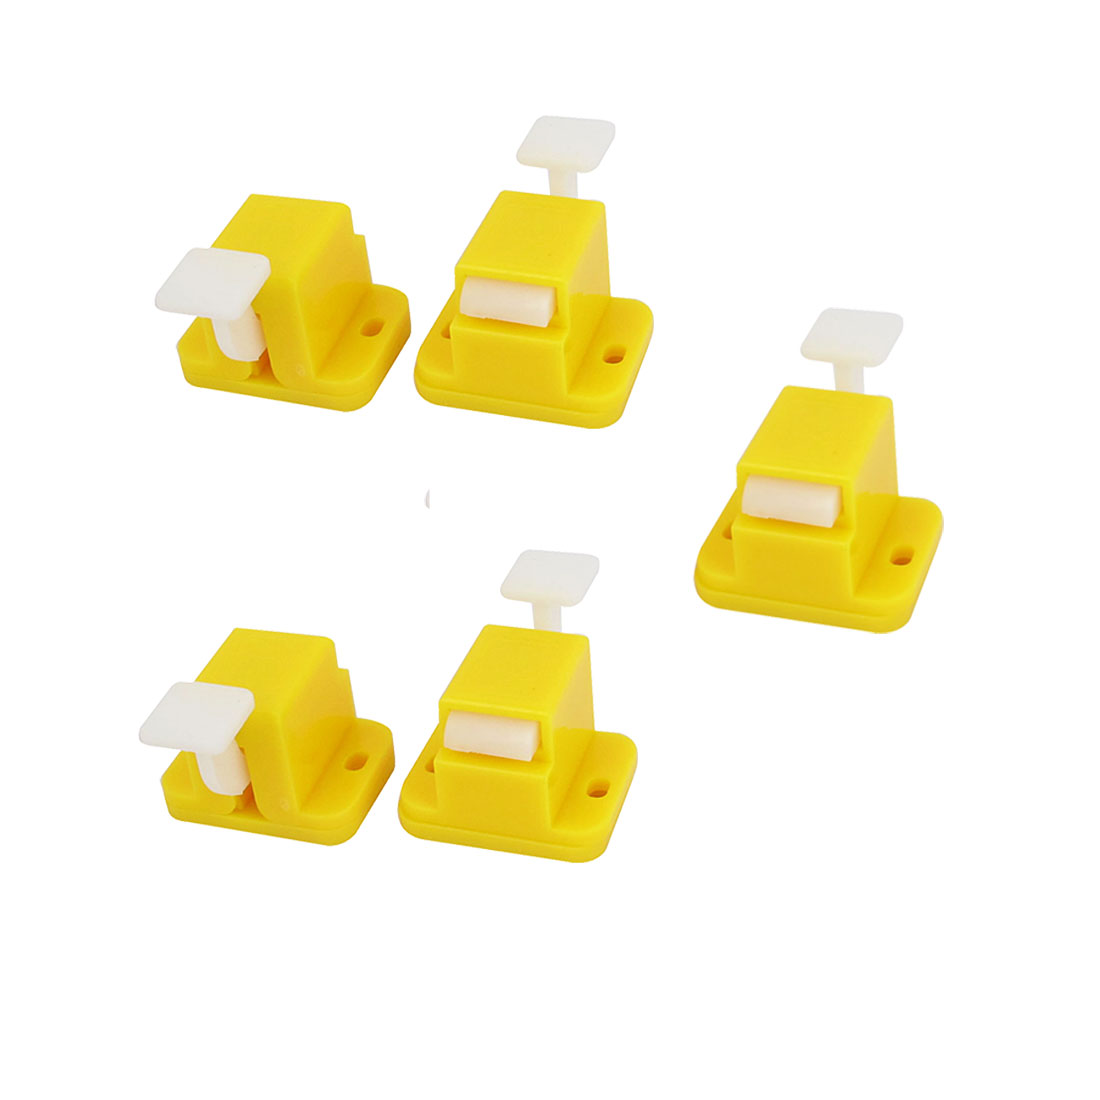 5 Pcs Plastic Prototype Test Fixture Jig Yellow for PCB Board DIY